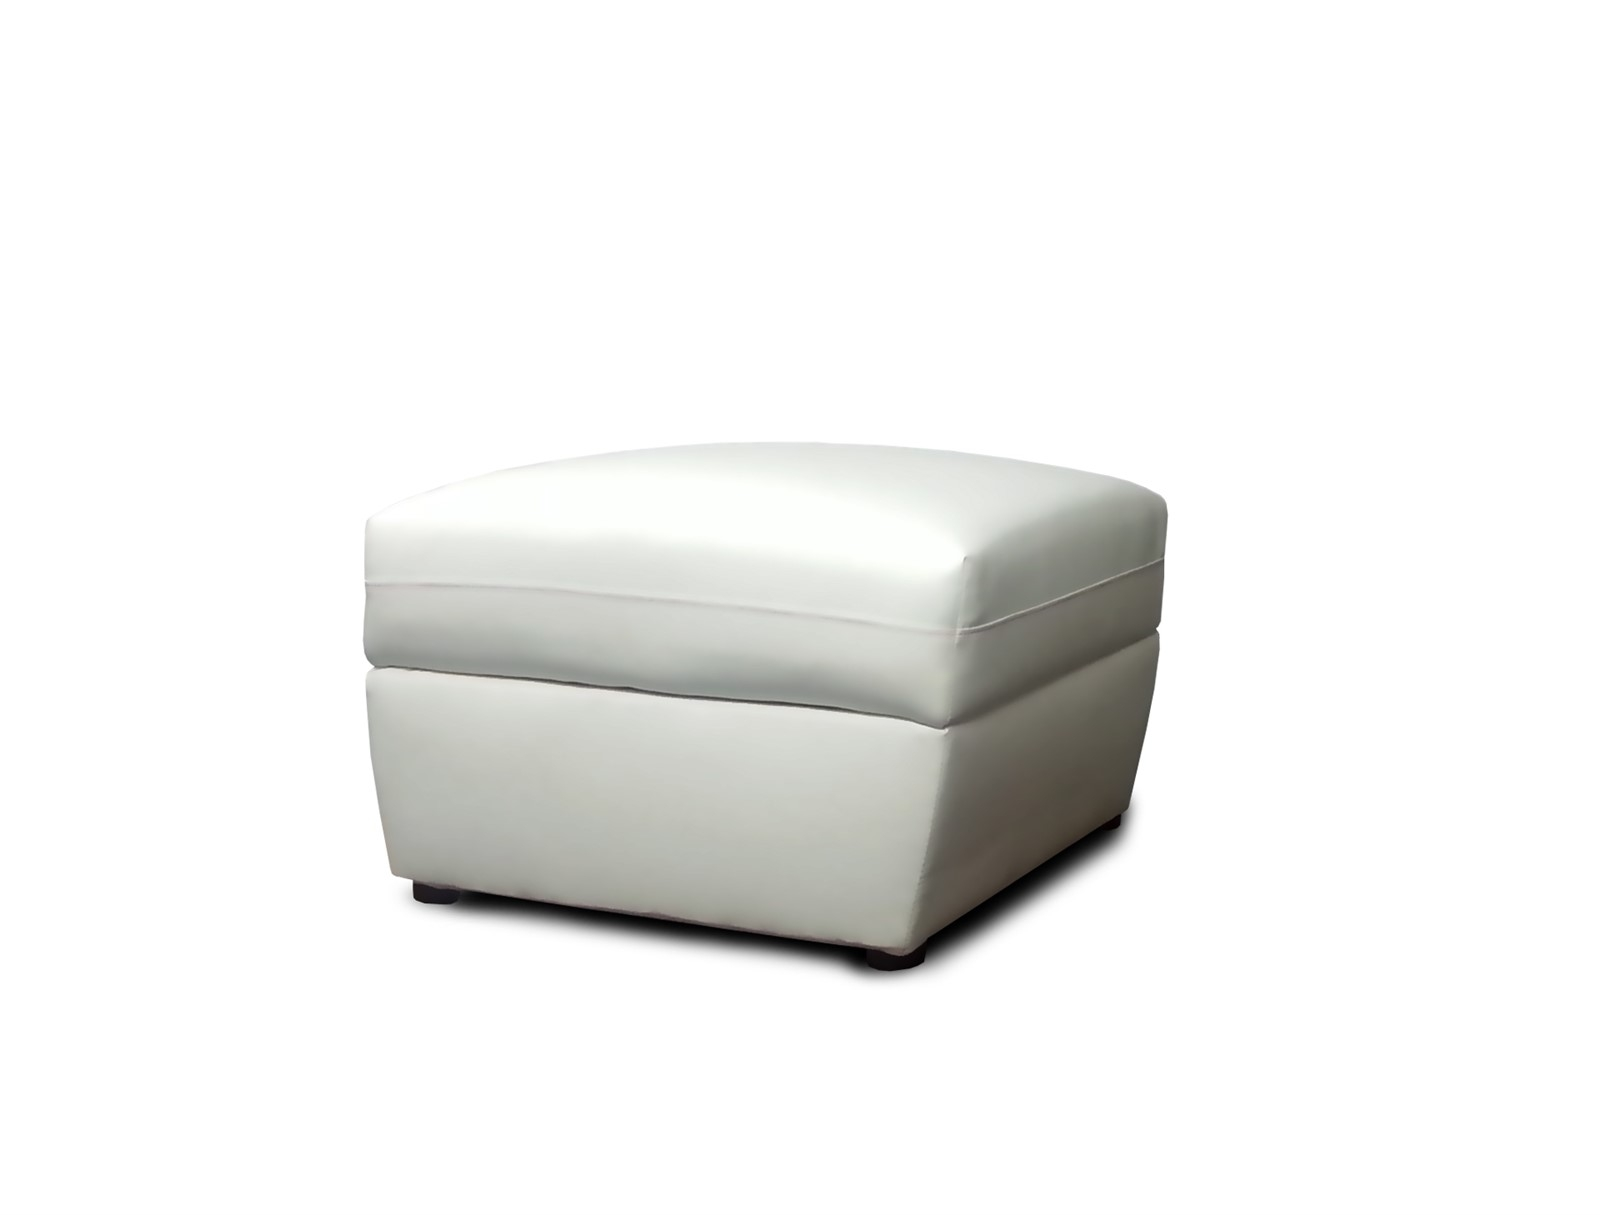 Large Ottoman Pouffe Single Seat Footstool Withwithout Storage With Regard To Tesco Footstools And Pouffes (Image 11 of 15)